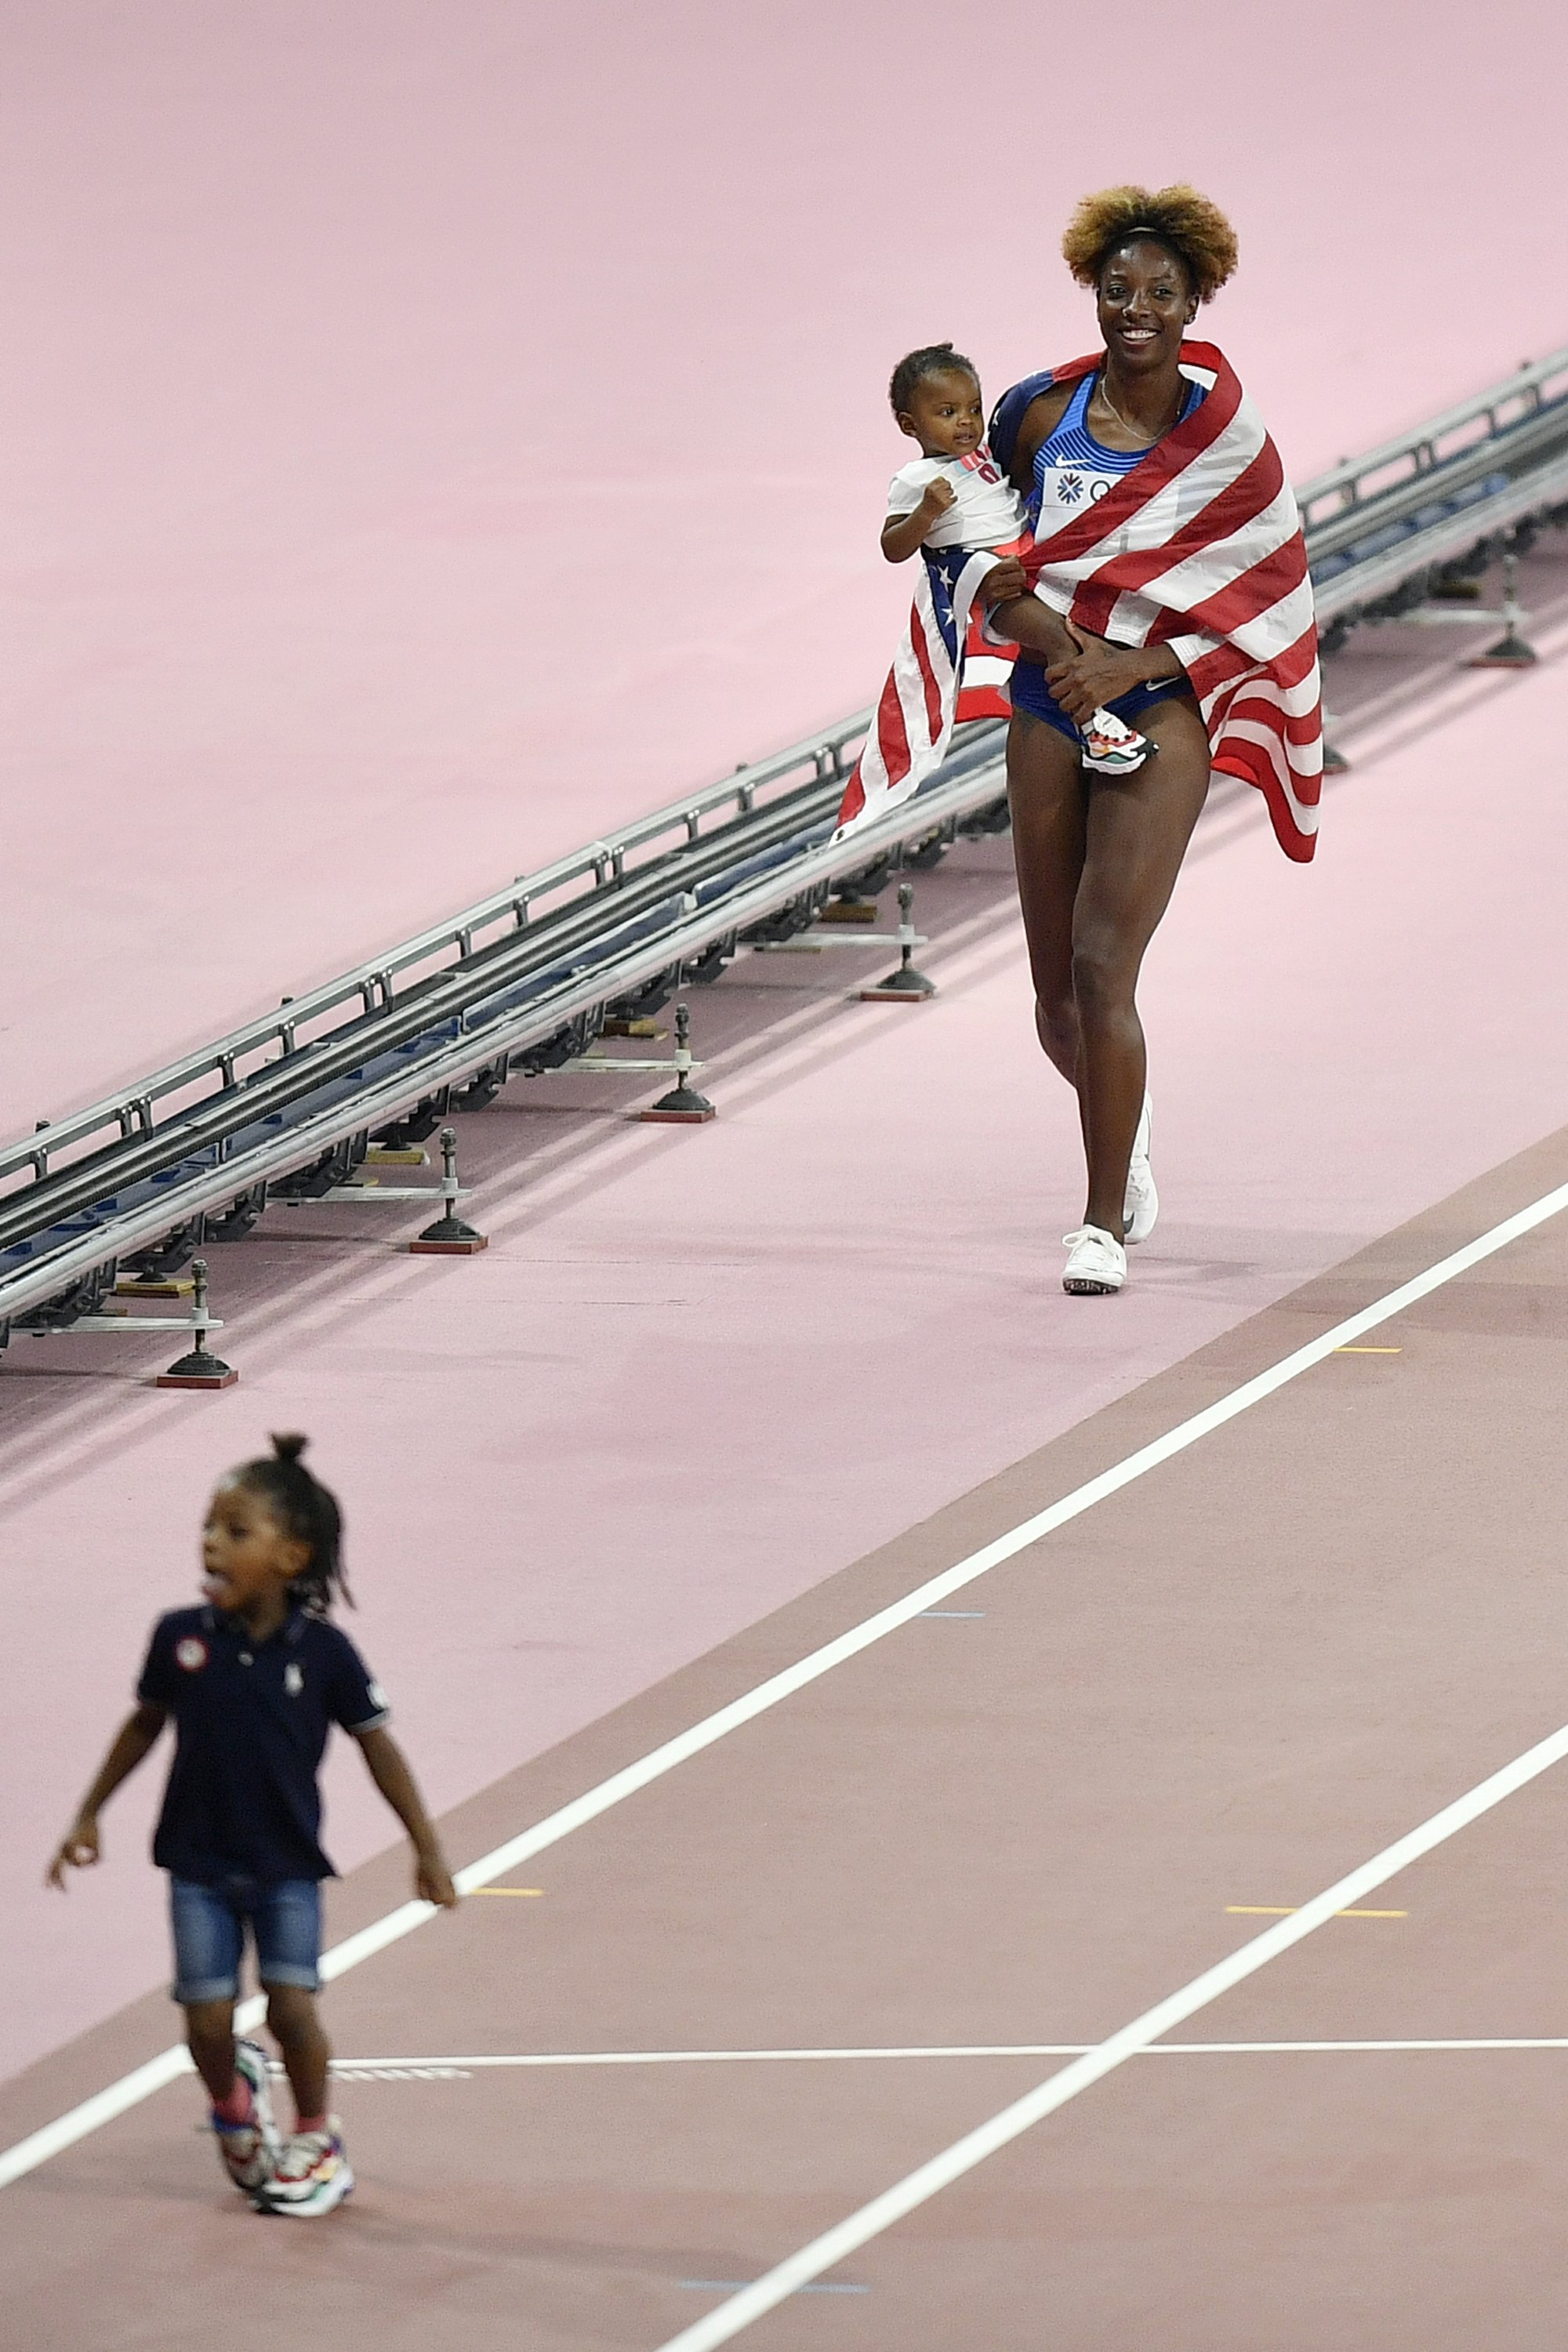 Mommy S Medal Mother Of 2 Closes Worlds With Hurdles Title